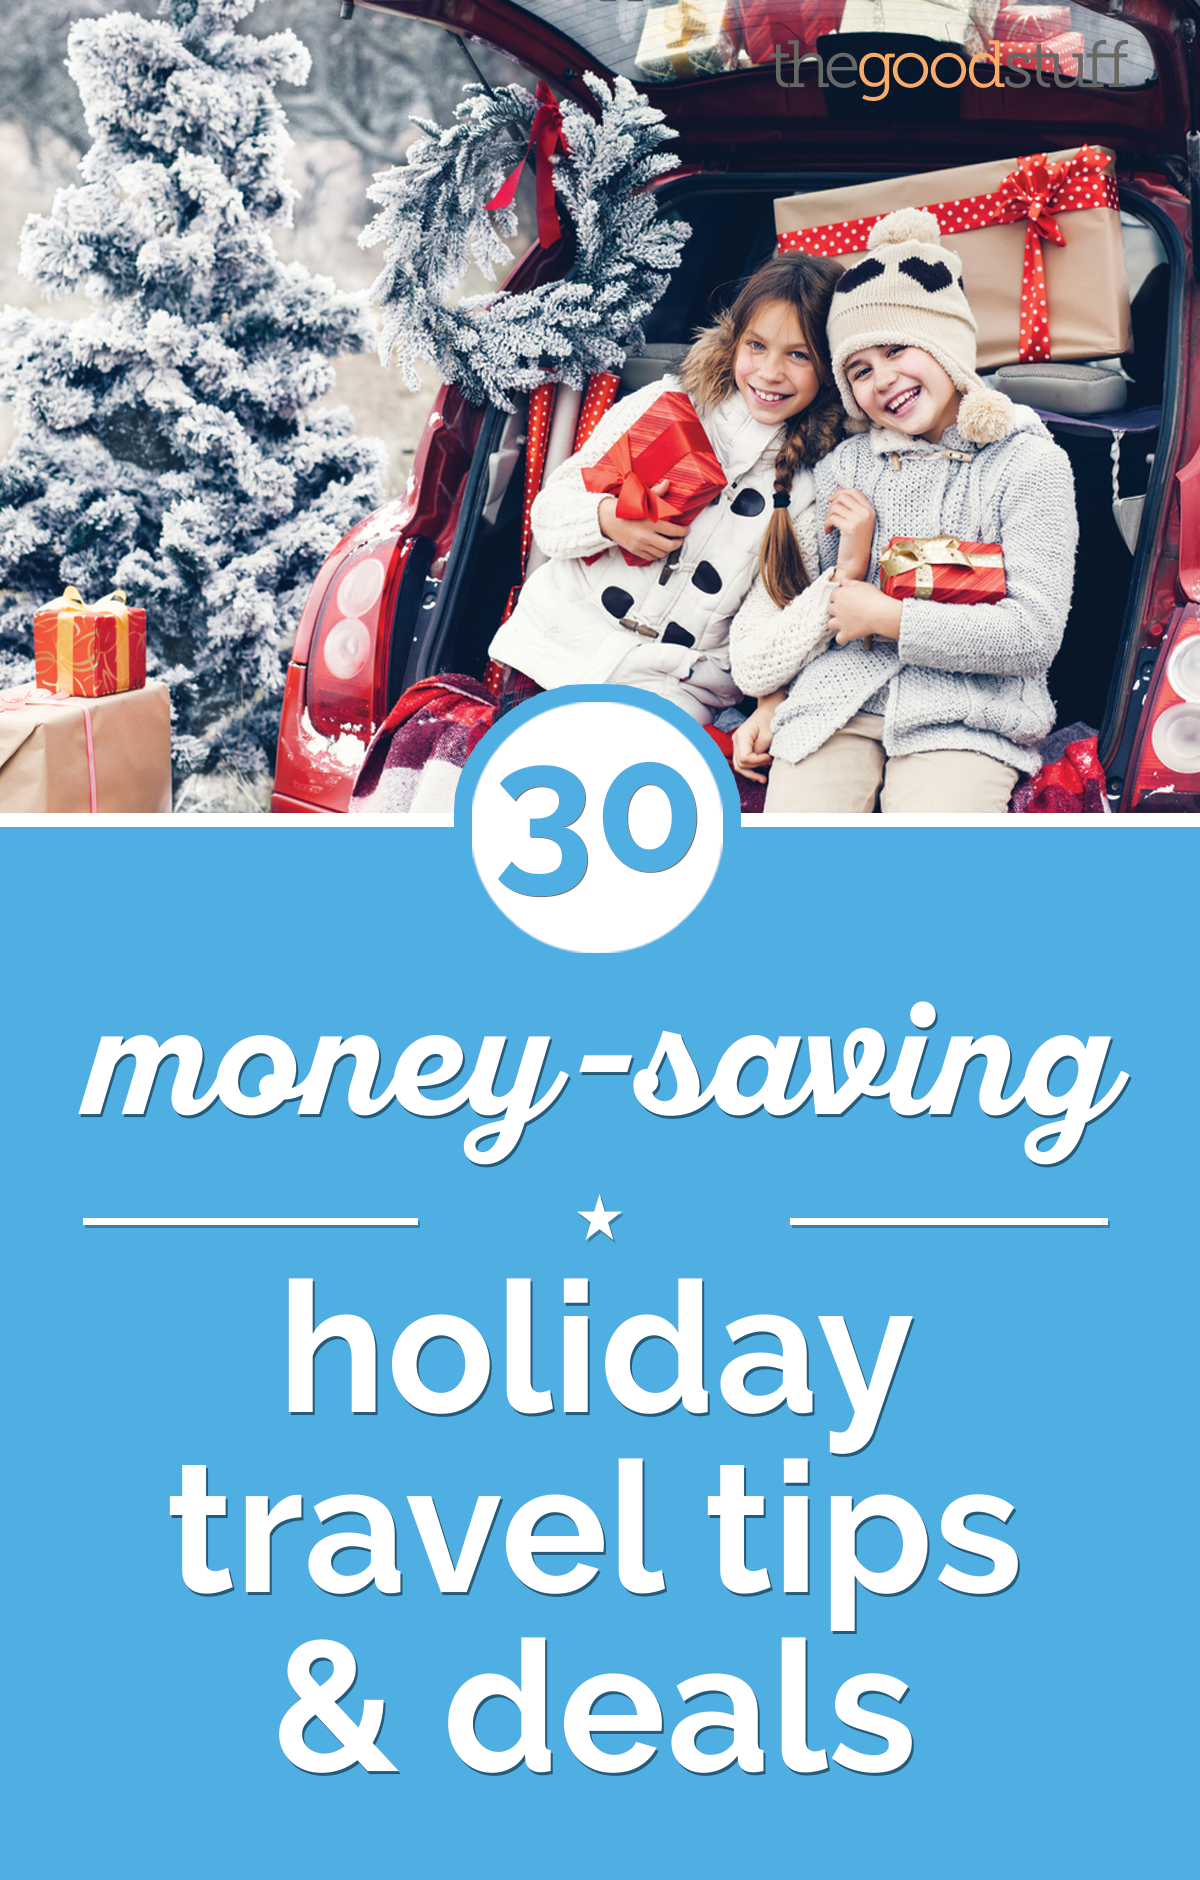 30 Money-Saving Holiday Travel Tips & Deals | thegoodstuff